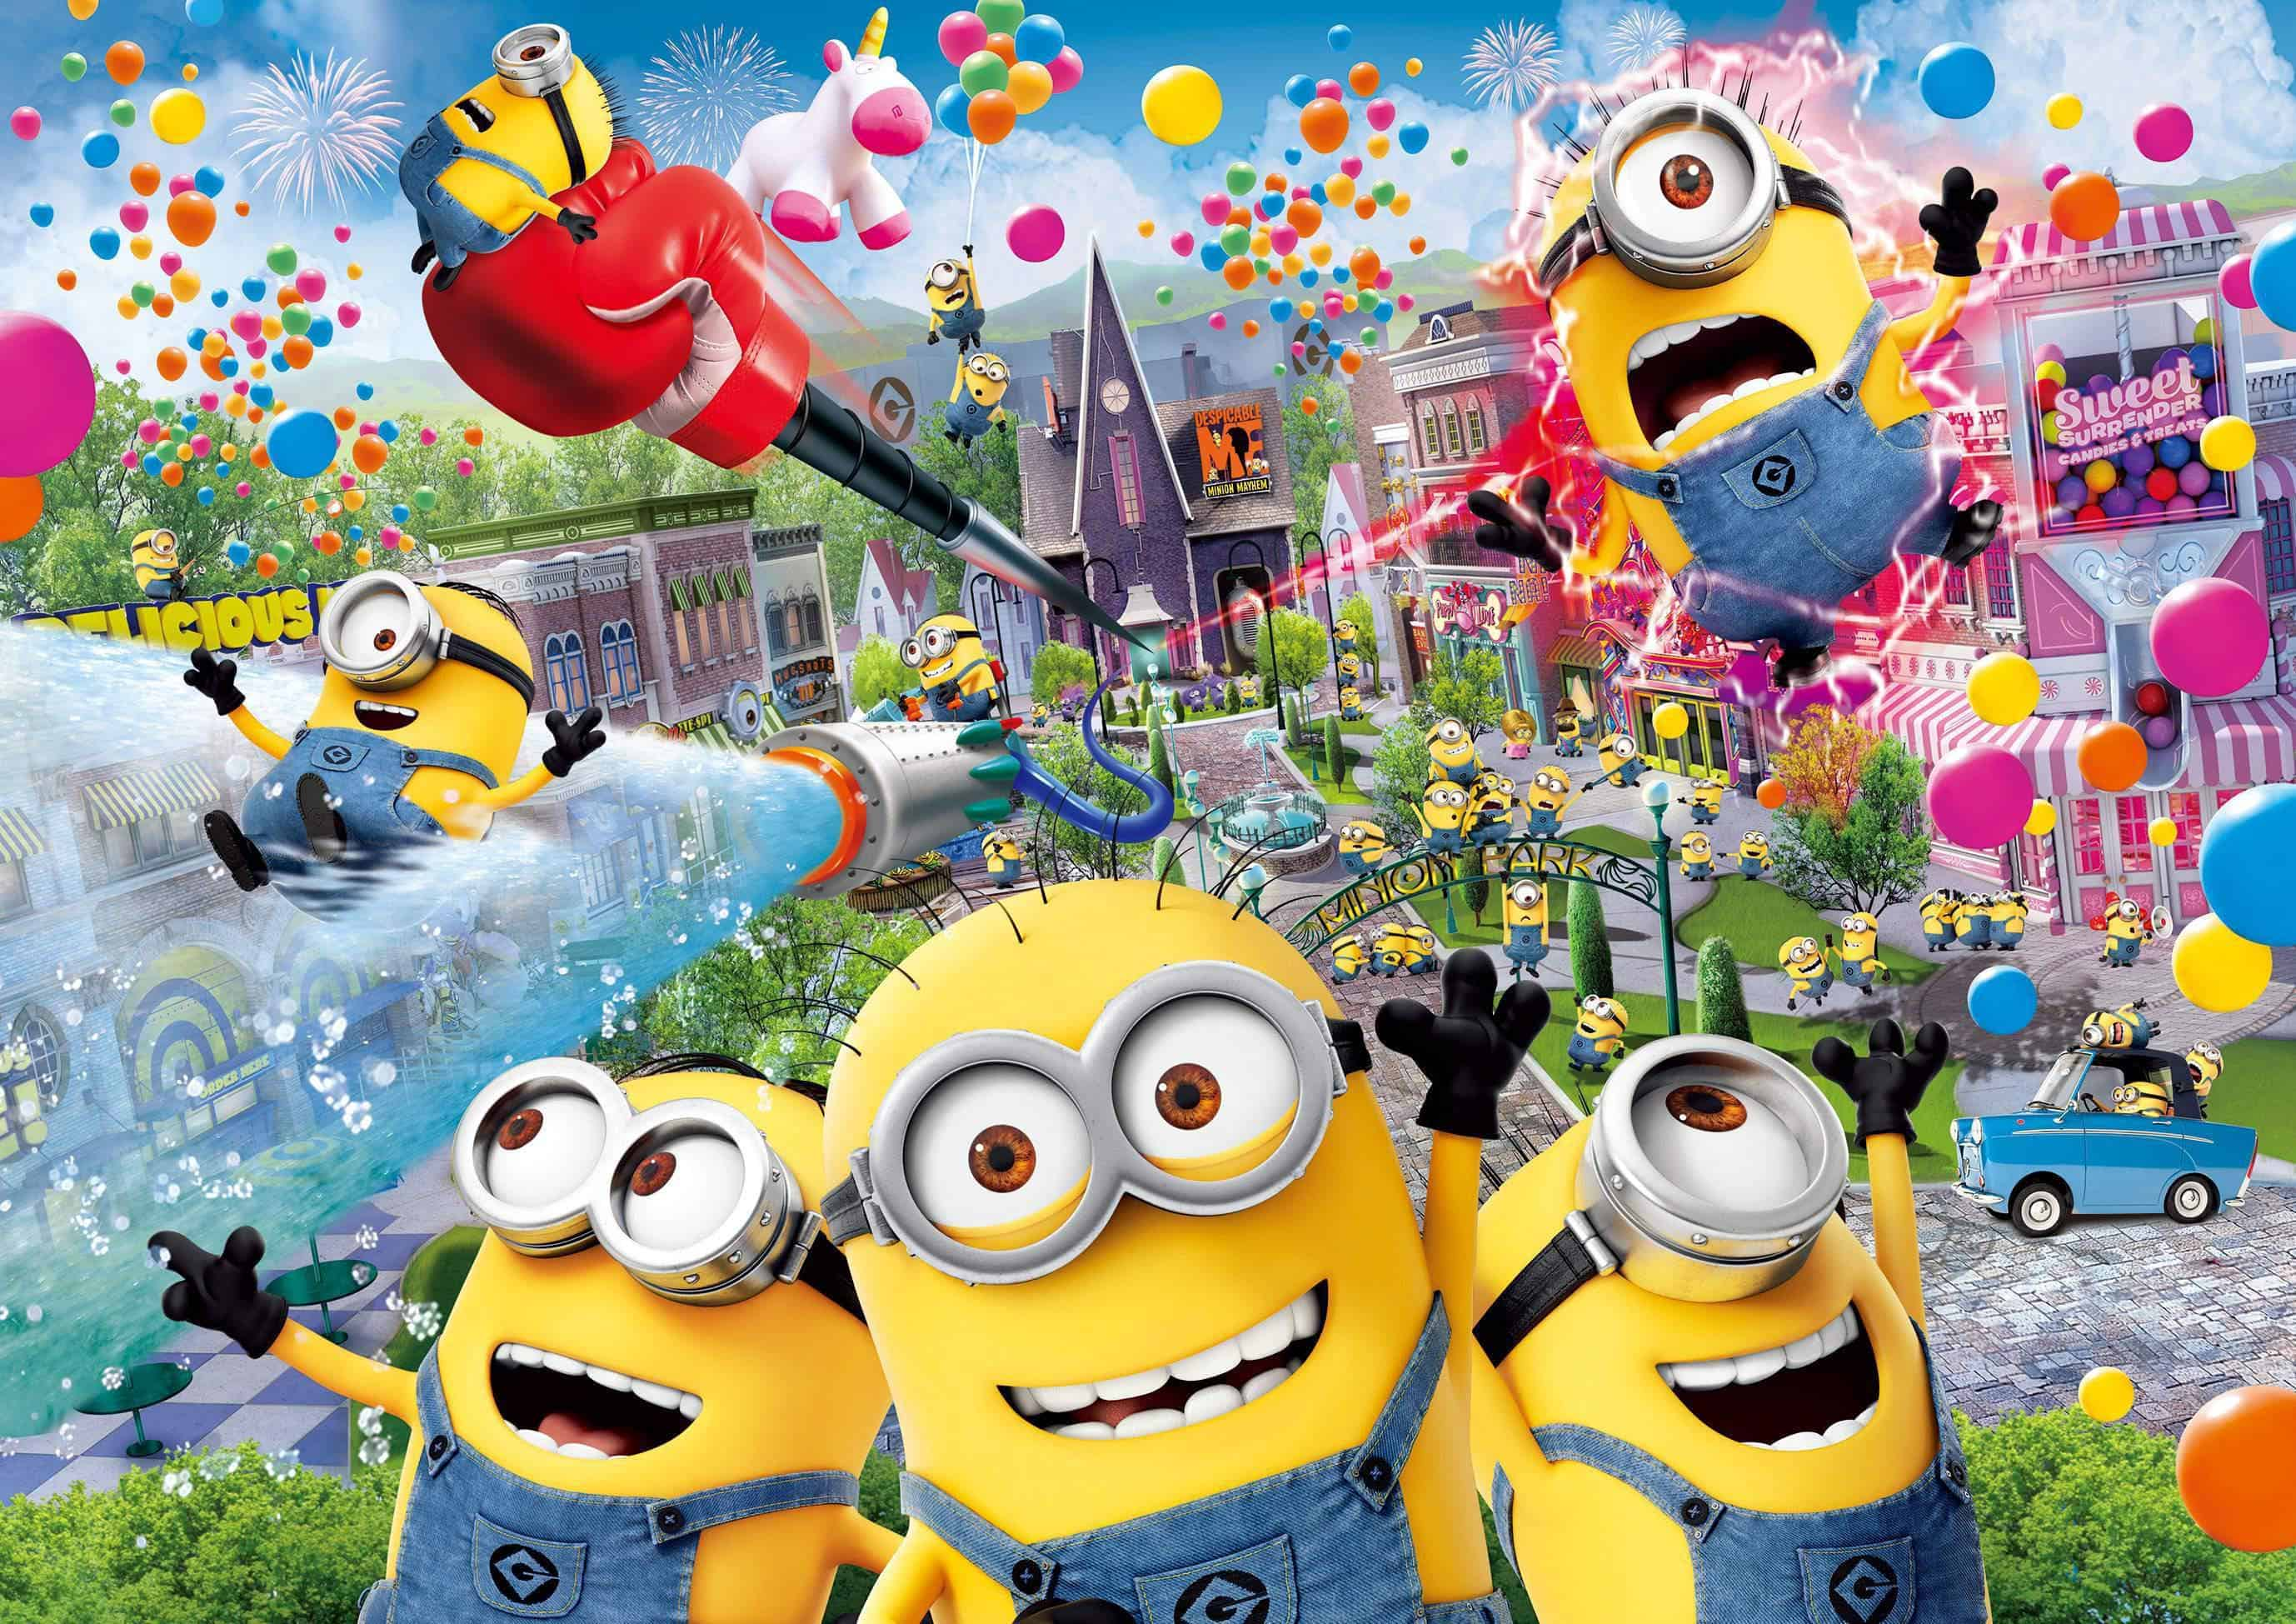 New Minion ride coming to Universal Studios Japan